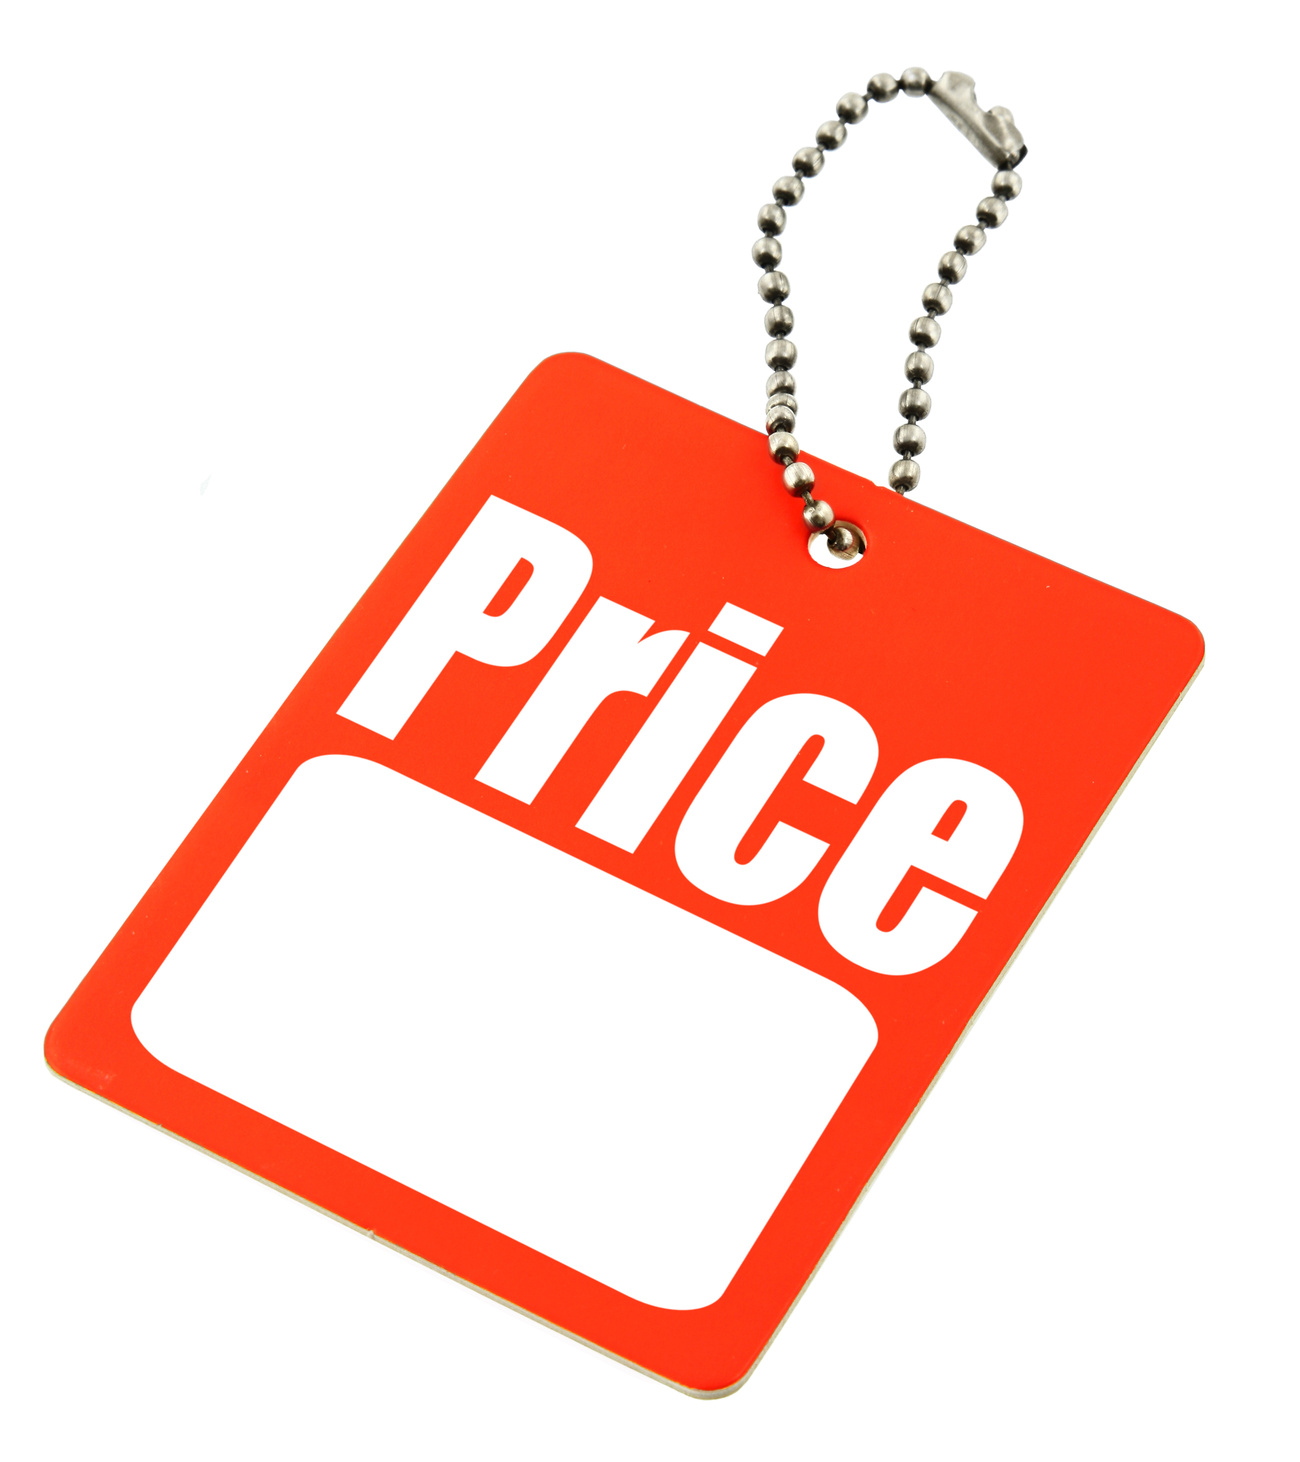 Free Price Tag Images, Download Free Clip Art, Free Clip Art.